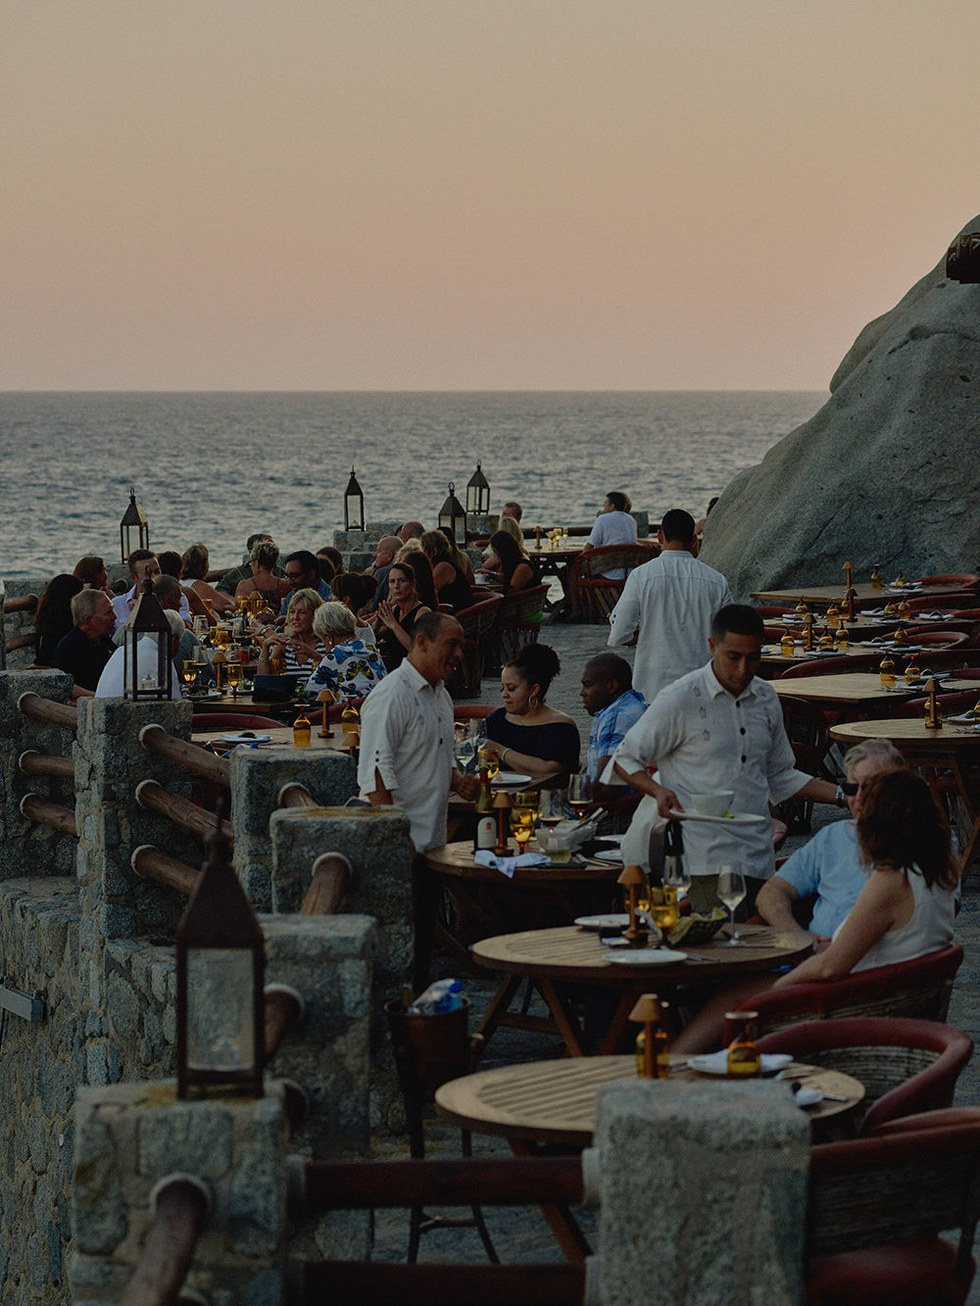 The cliffside dining terrace